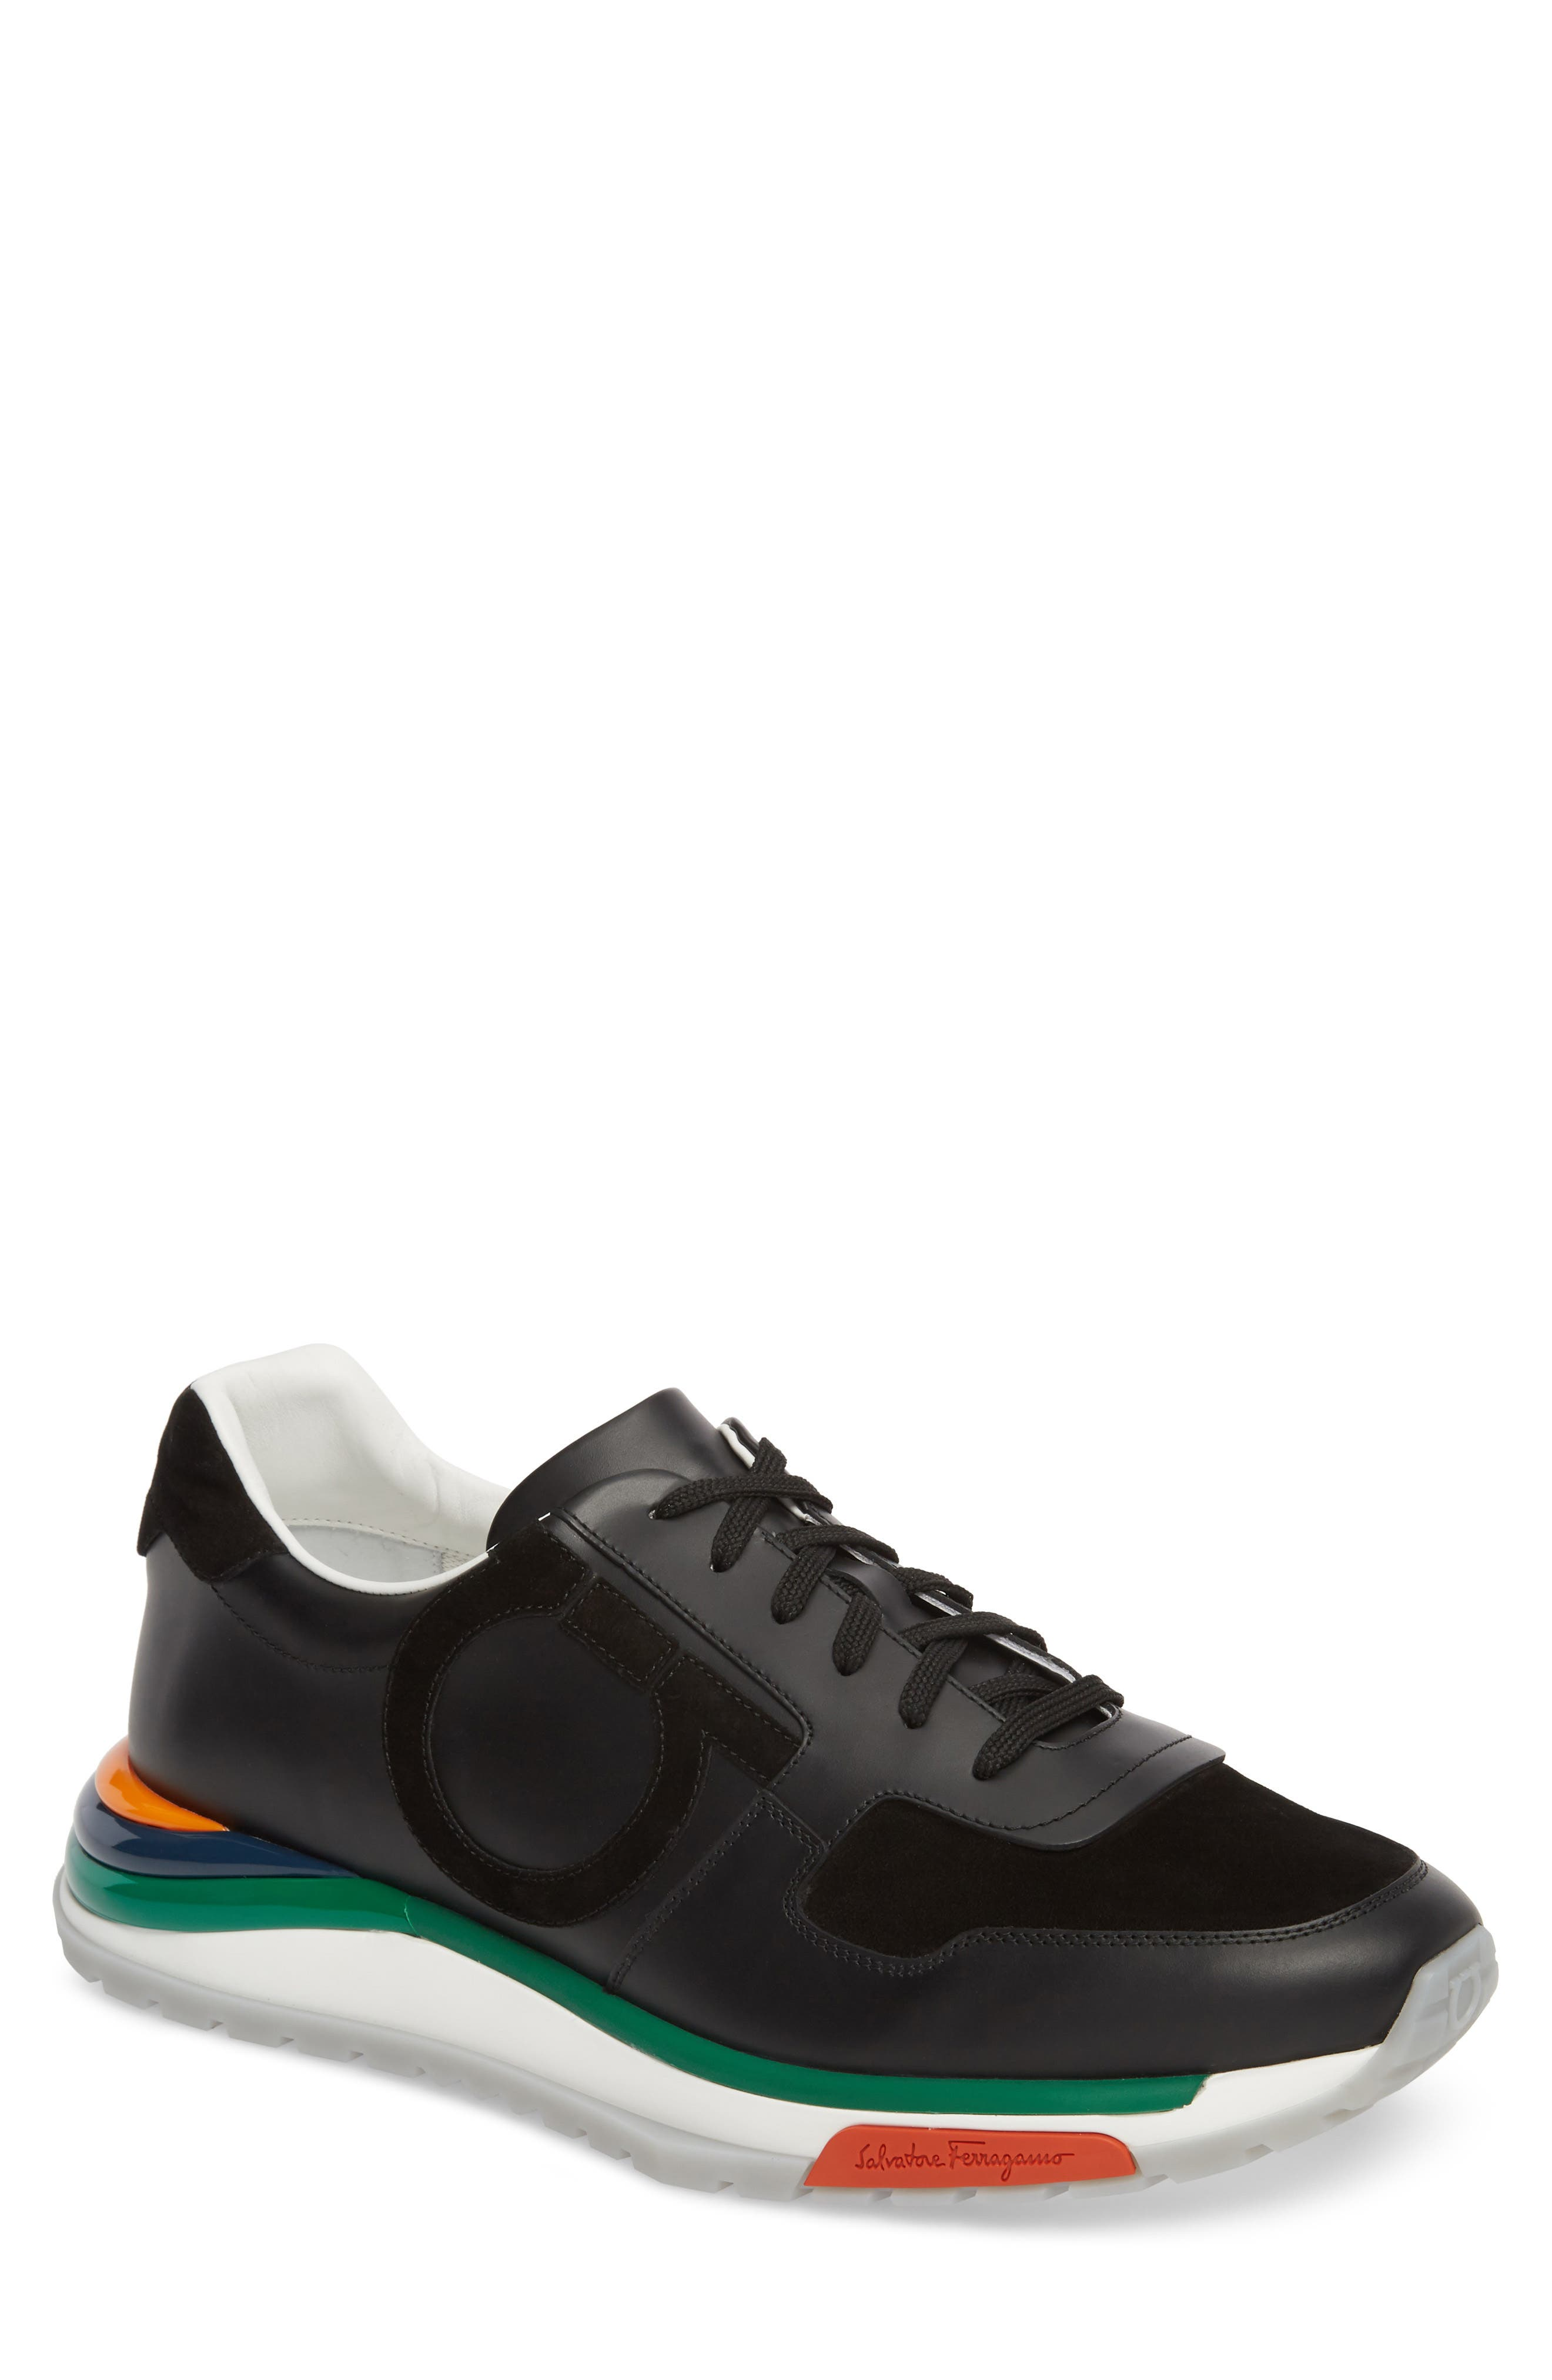 Brooklyn Running Shoe,                         Main,                         color, NERO LEATHER